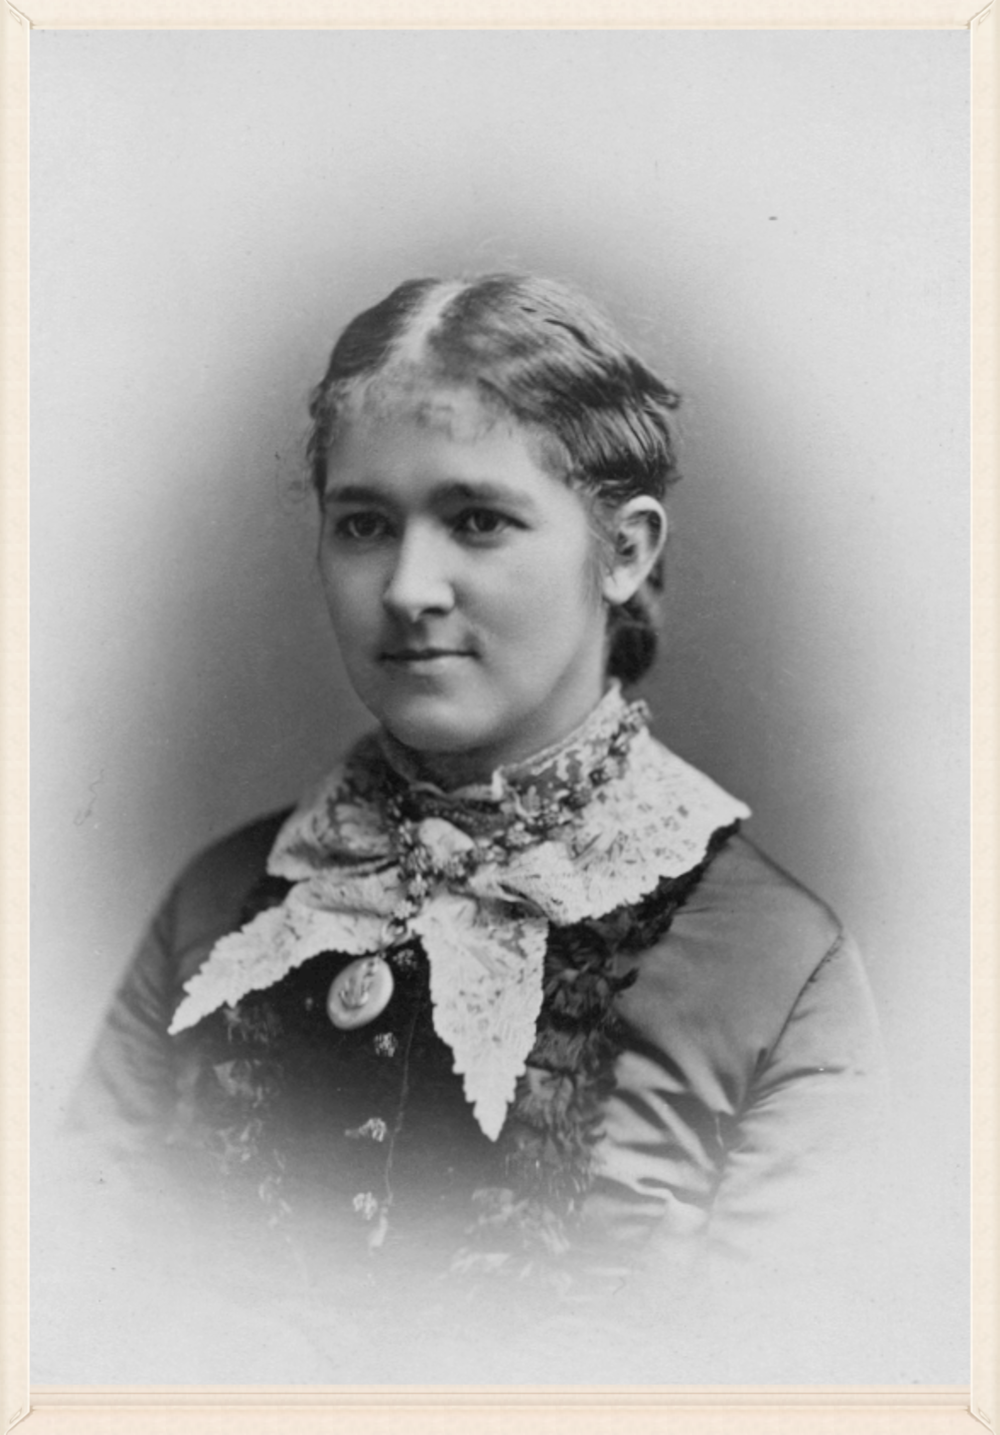 Lucy Hazeltine Sherman